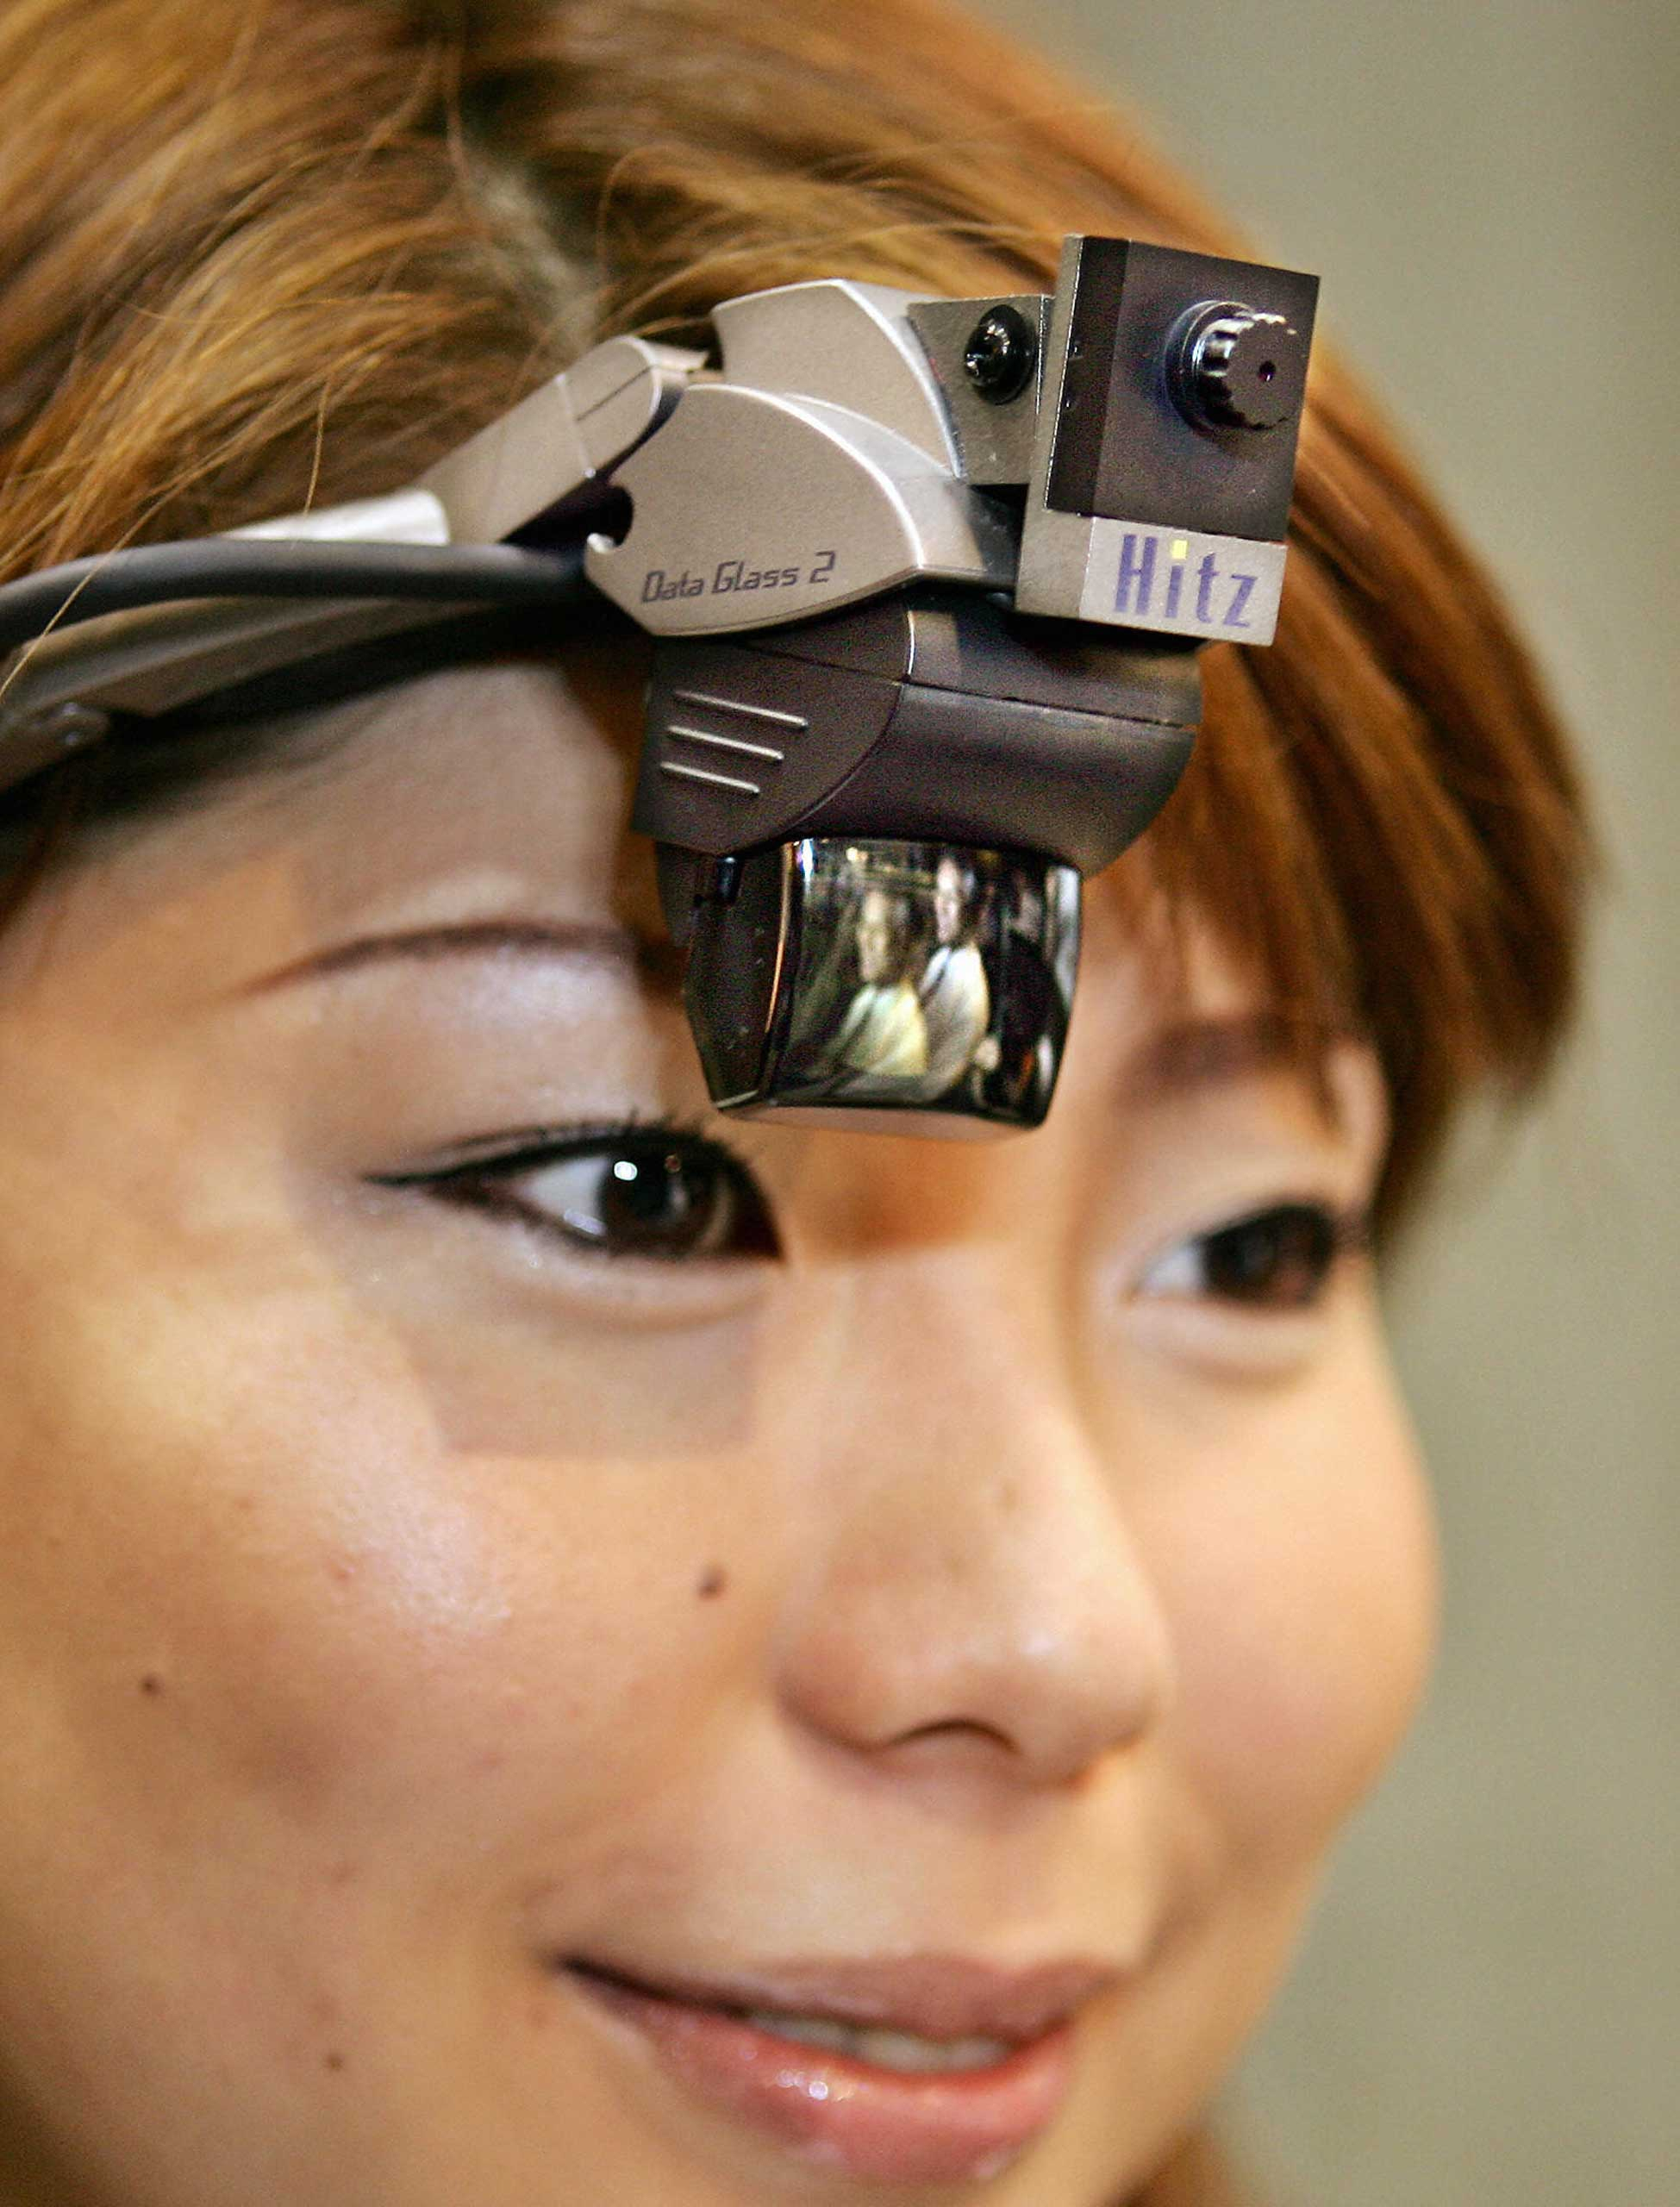 <strong>2005</strong>                                                                      A girl wore a full color head mounted display with a built-in camera as Japan's machinery maker Hitachi Zosen and Shimadzu unveiled a wearable computer, consisting of the HMD and a palm sized Windows XP PC with a pointing device at a virtual reality exhibition in Tokyo.